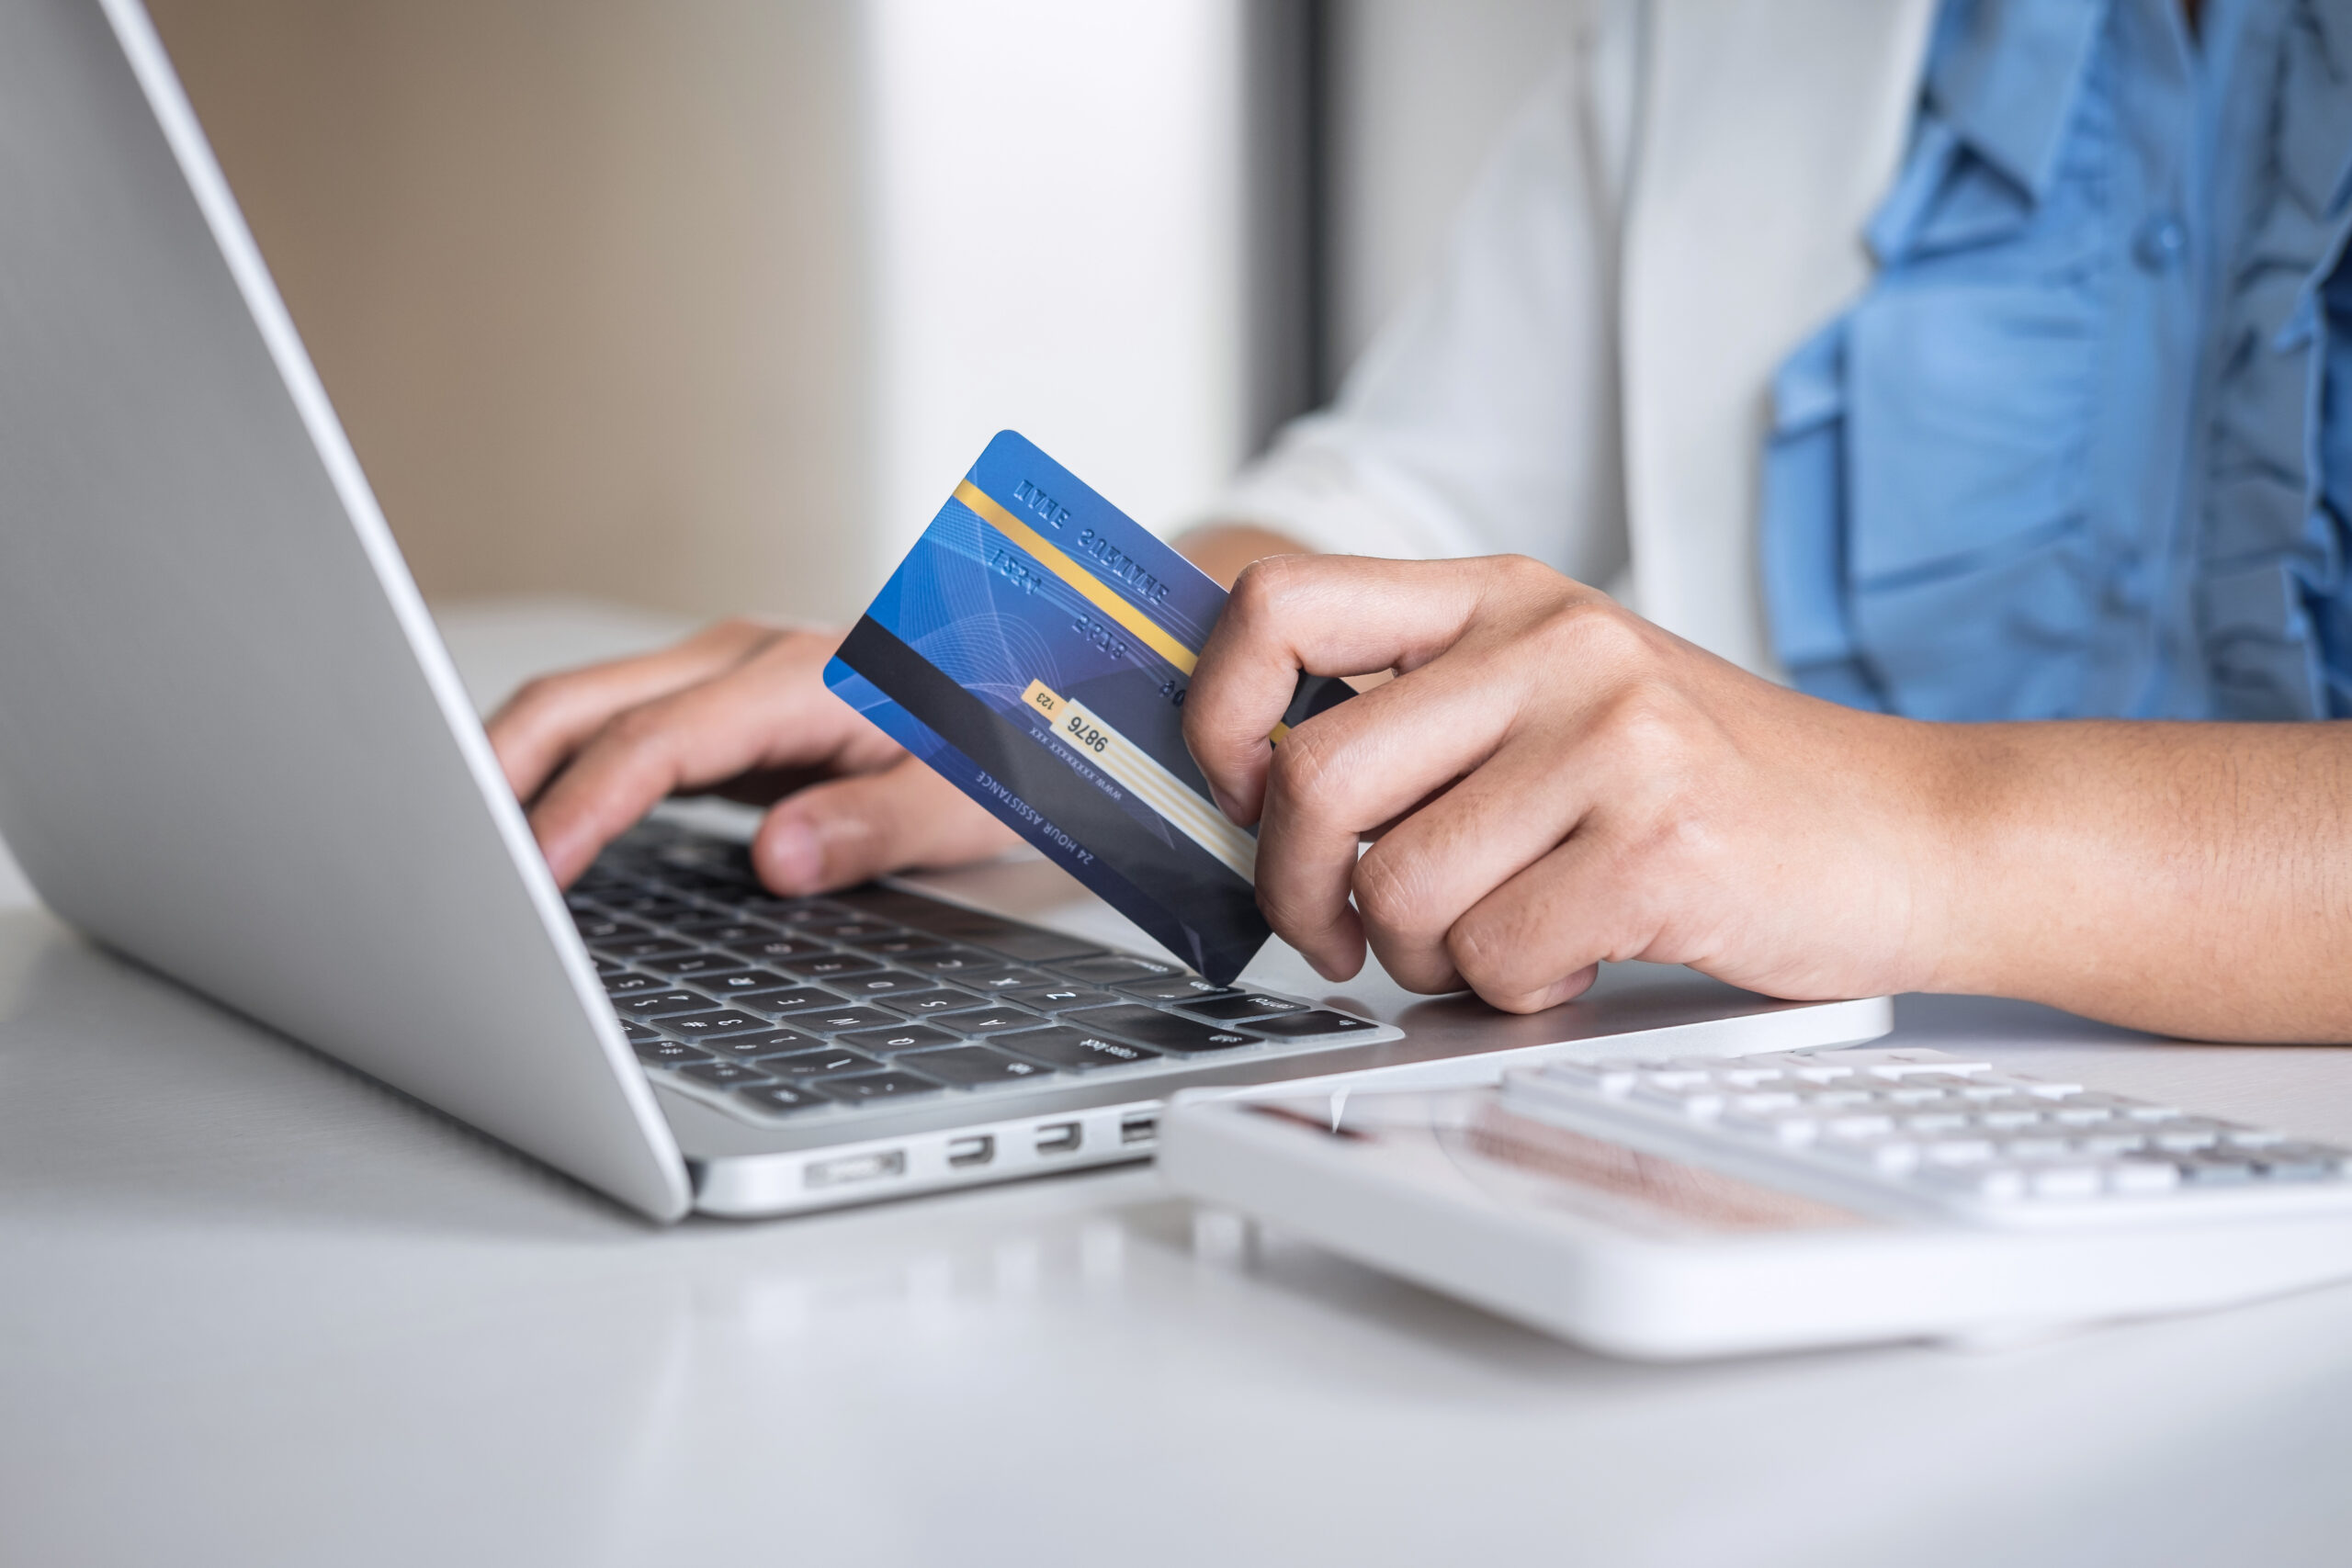 Business woman consumer holding credit card and typing on laptop